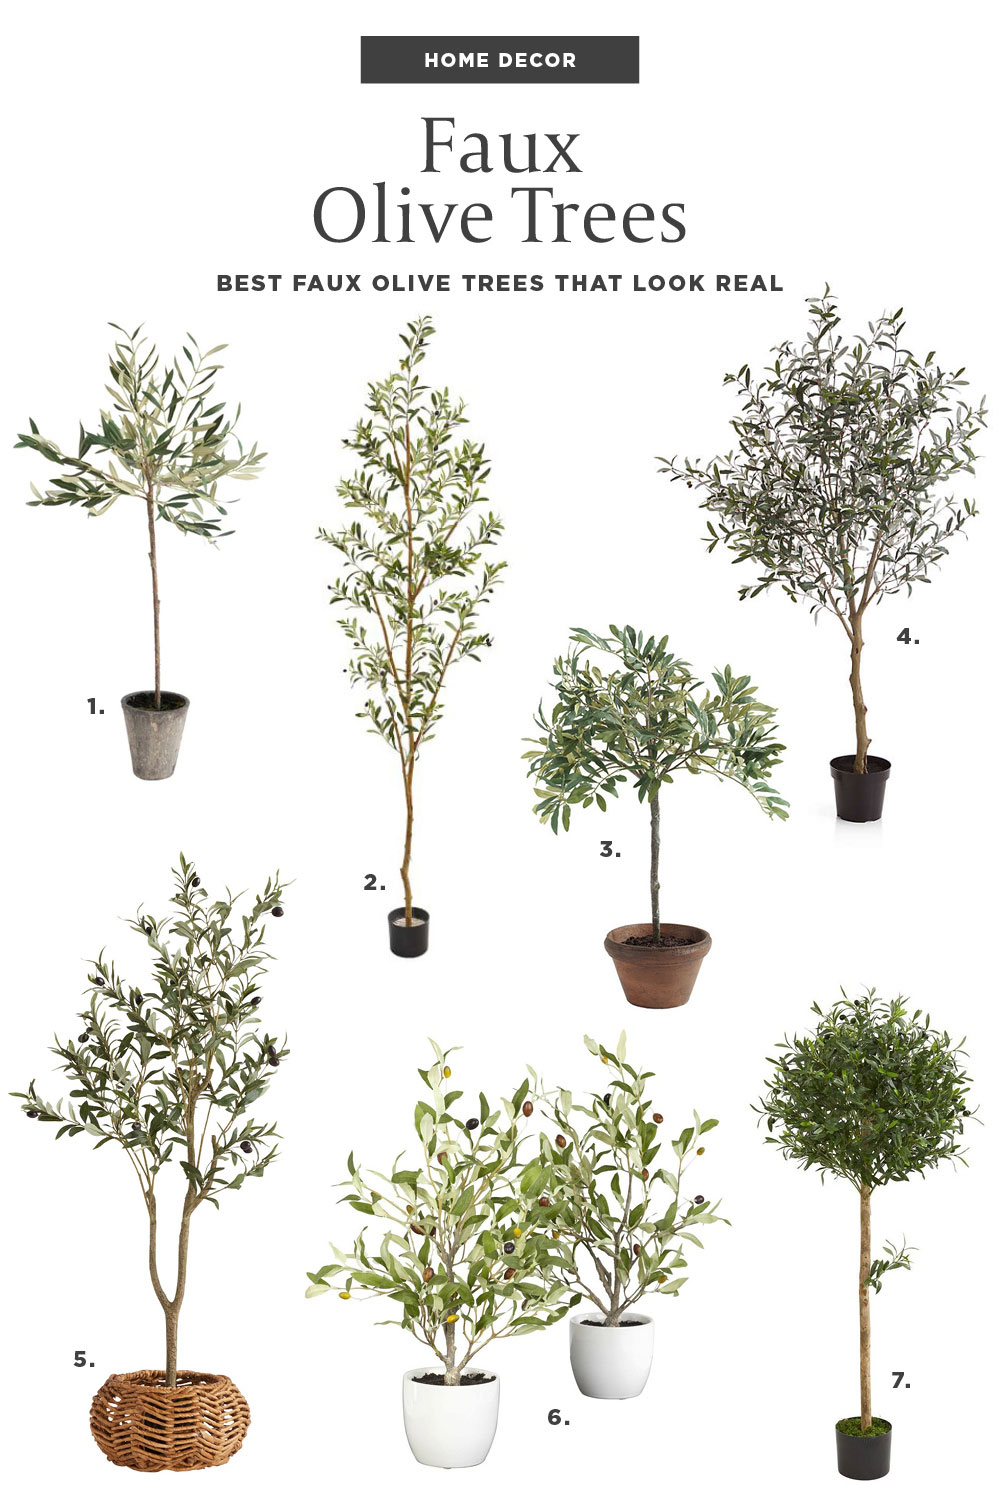 Best Faux Olive Trees Home Decor